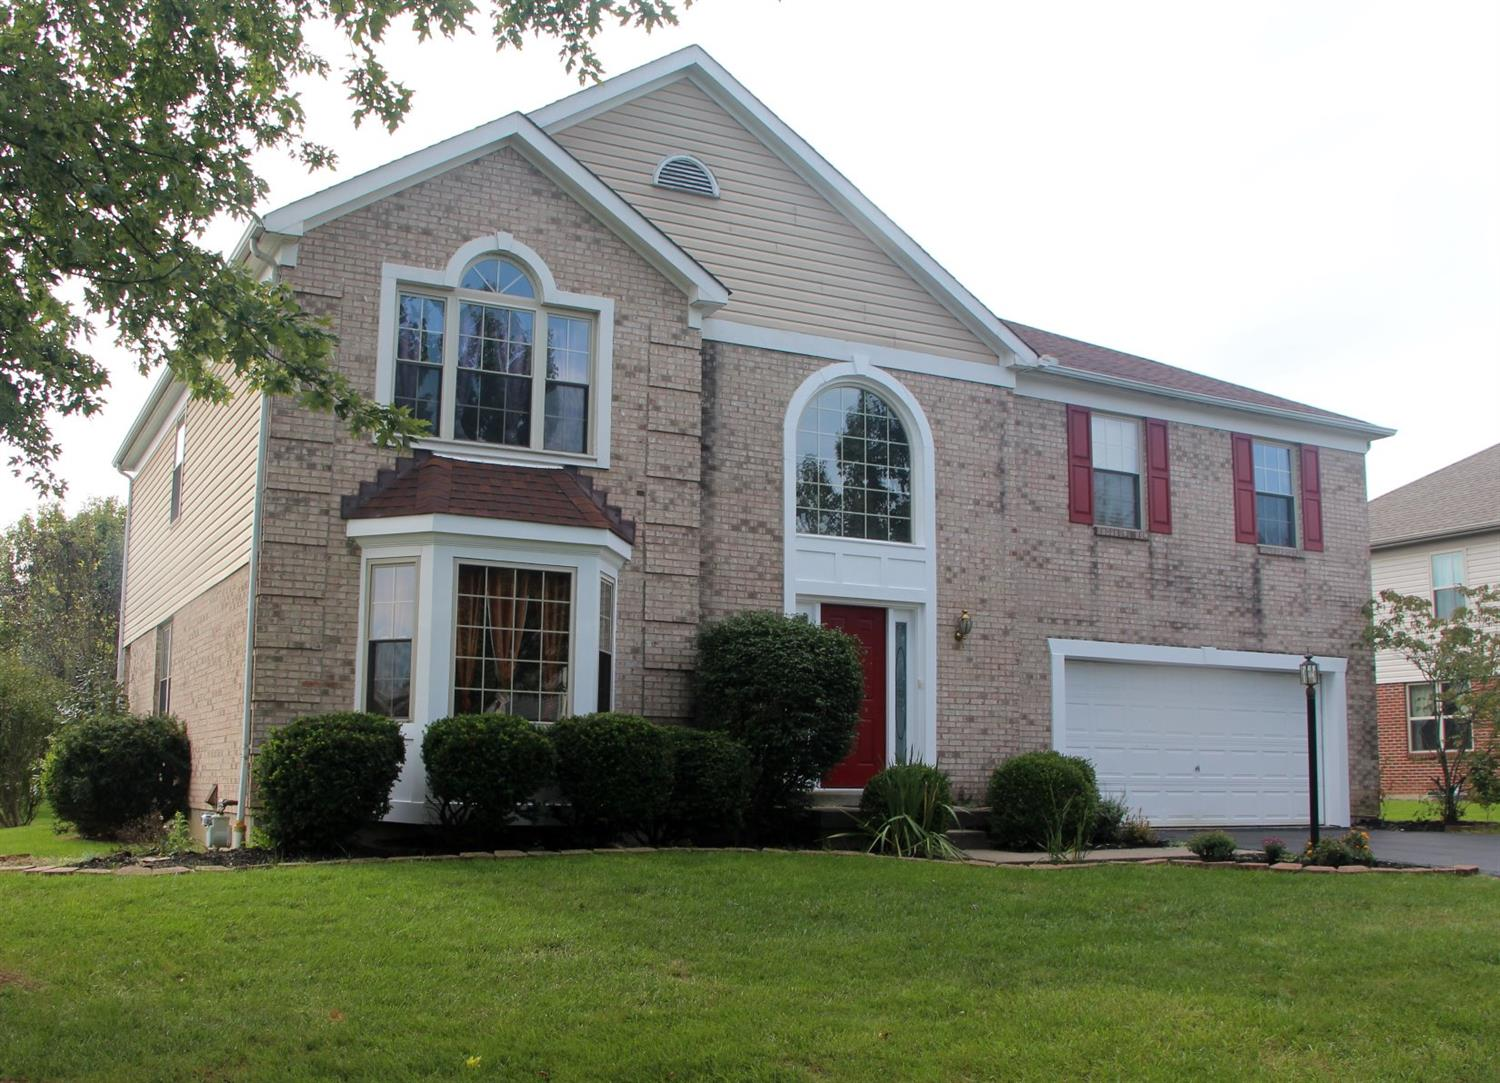 Property for sale at 6537 Glenarbor Drive, West Chester,  OH 45069